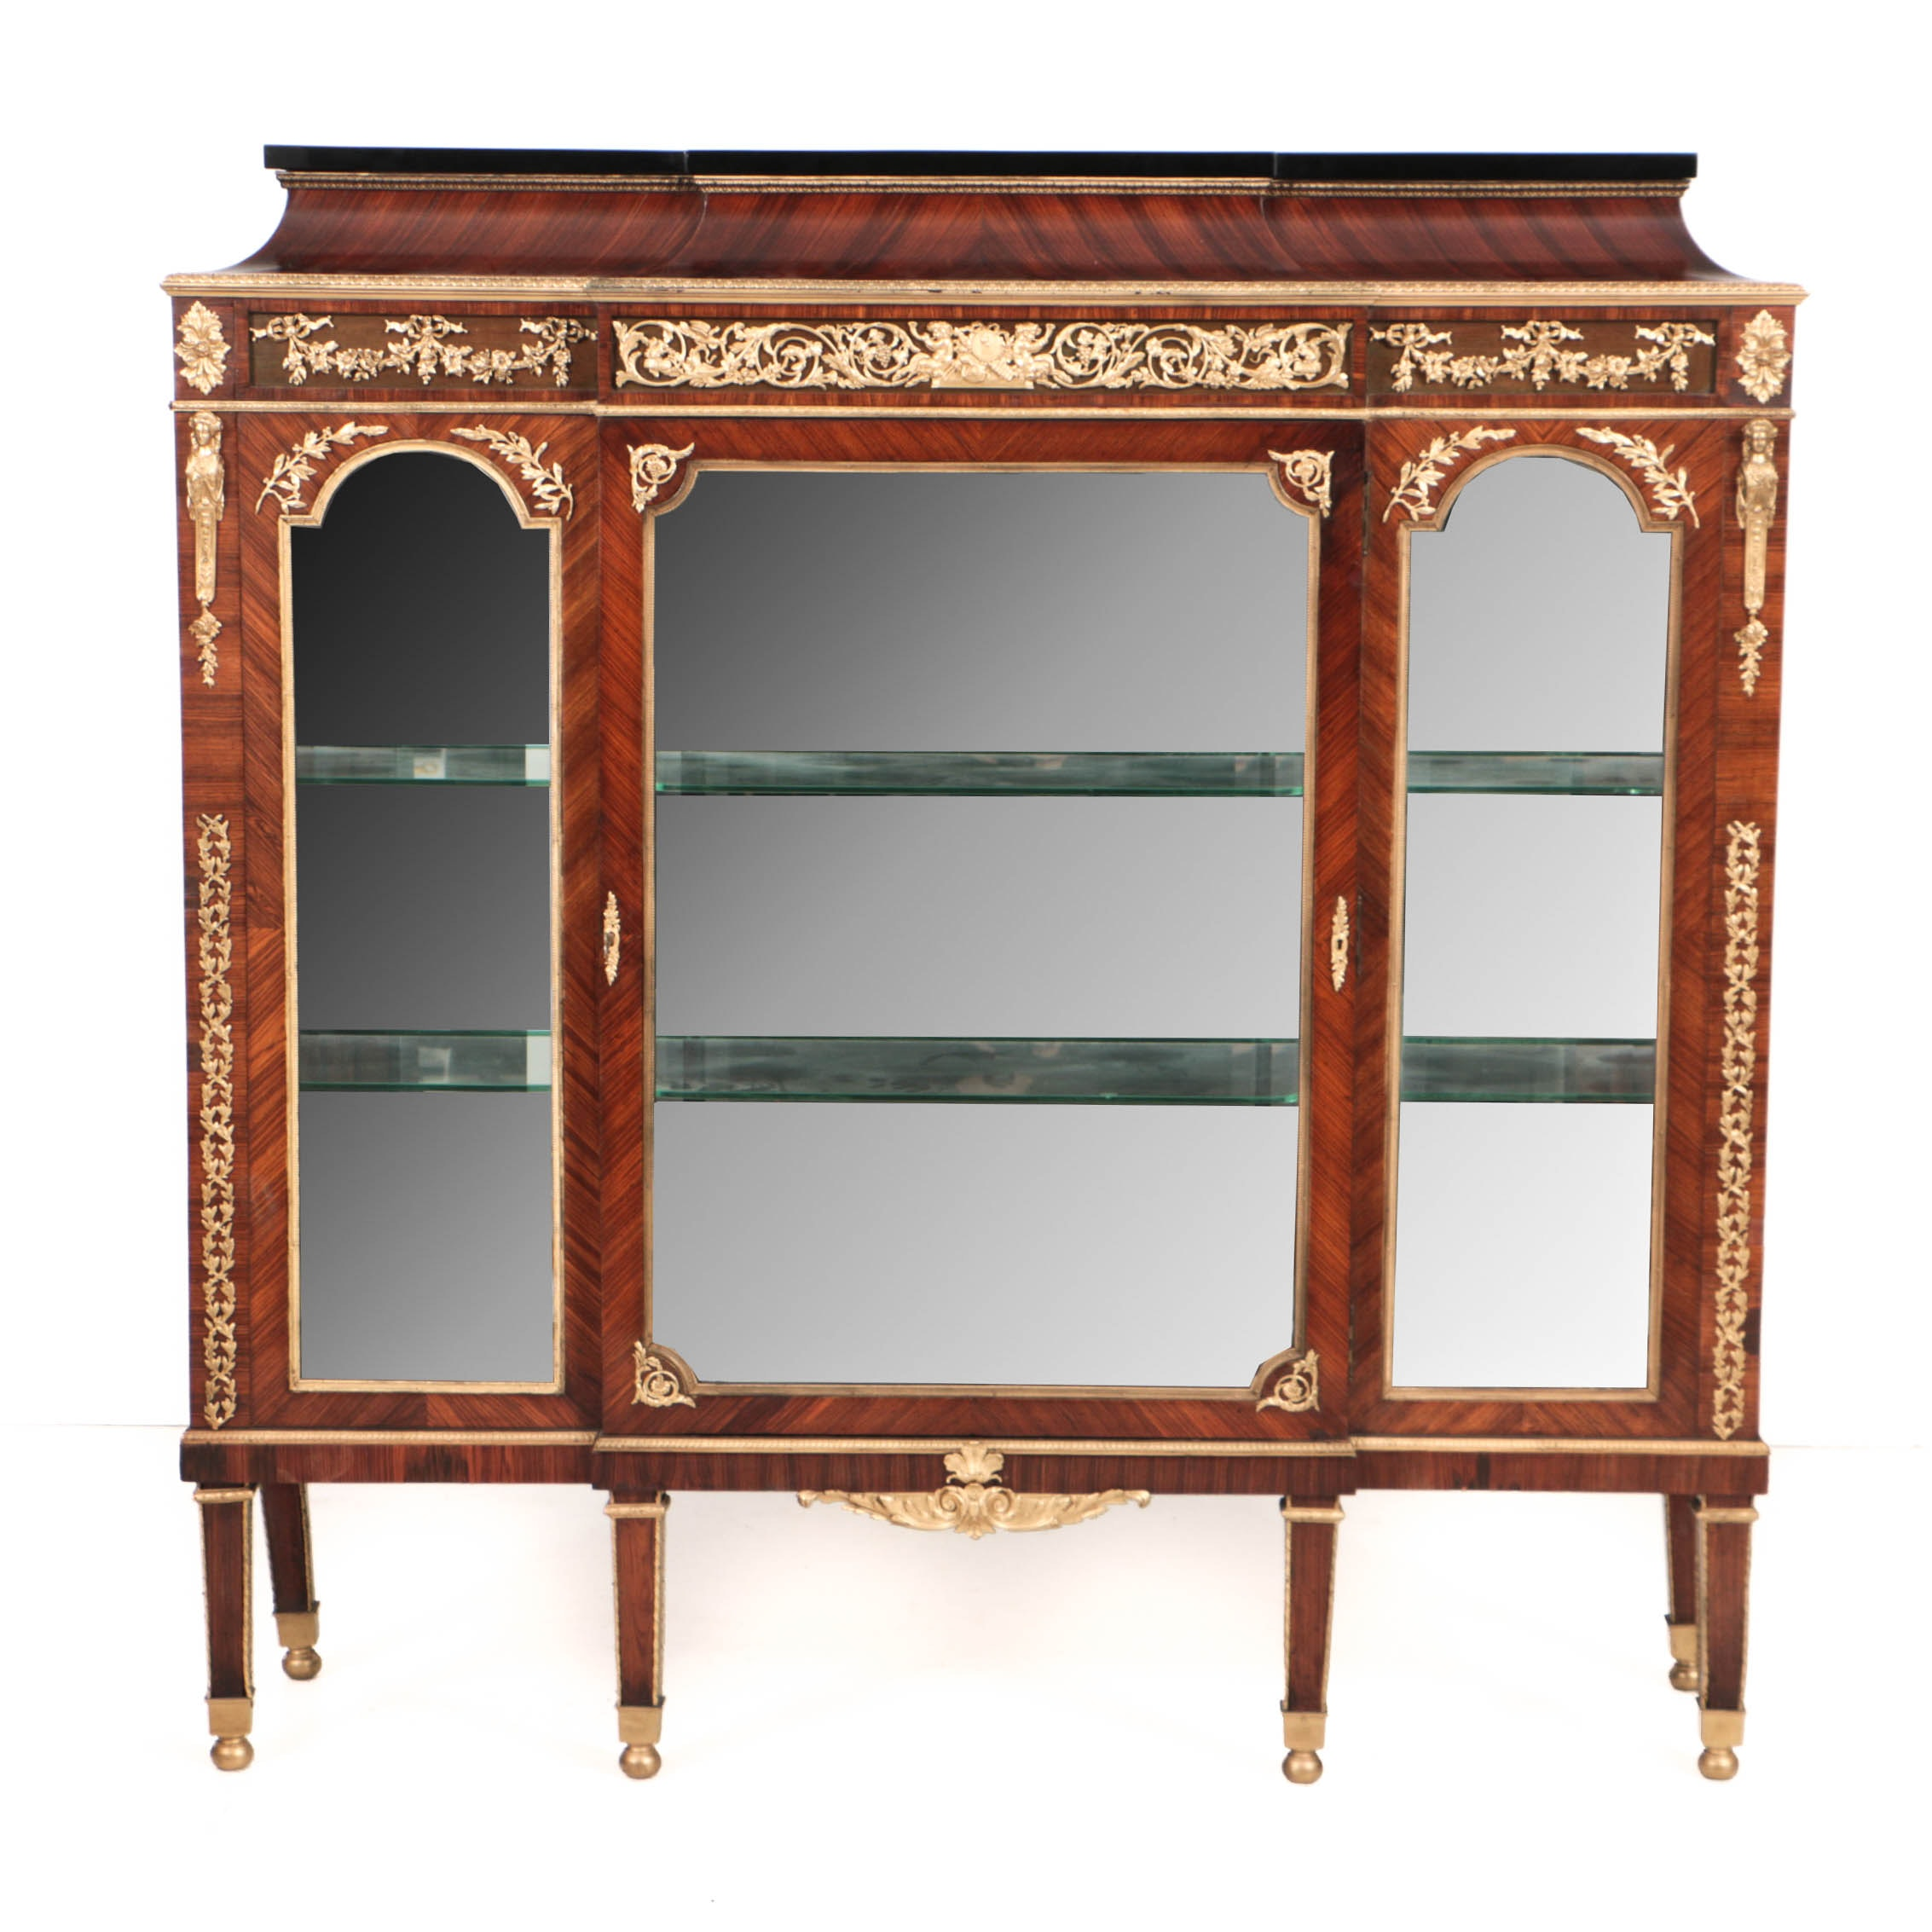 Early 20th Century French Neoclassical Style Kingwood and Gilt-Metal Vitrine